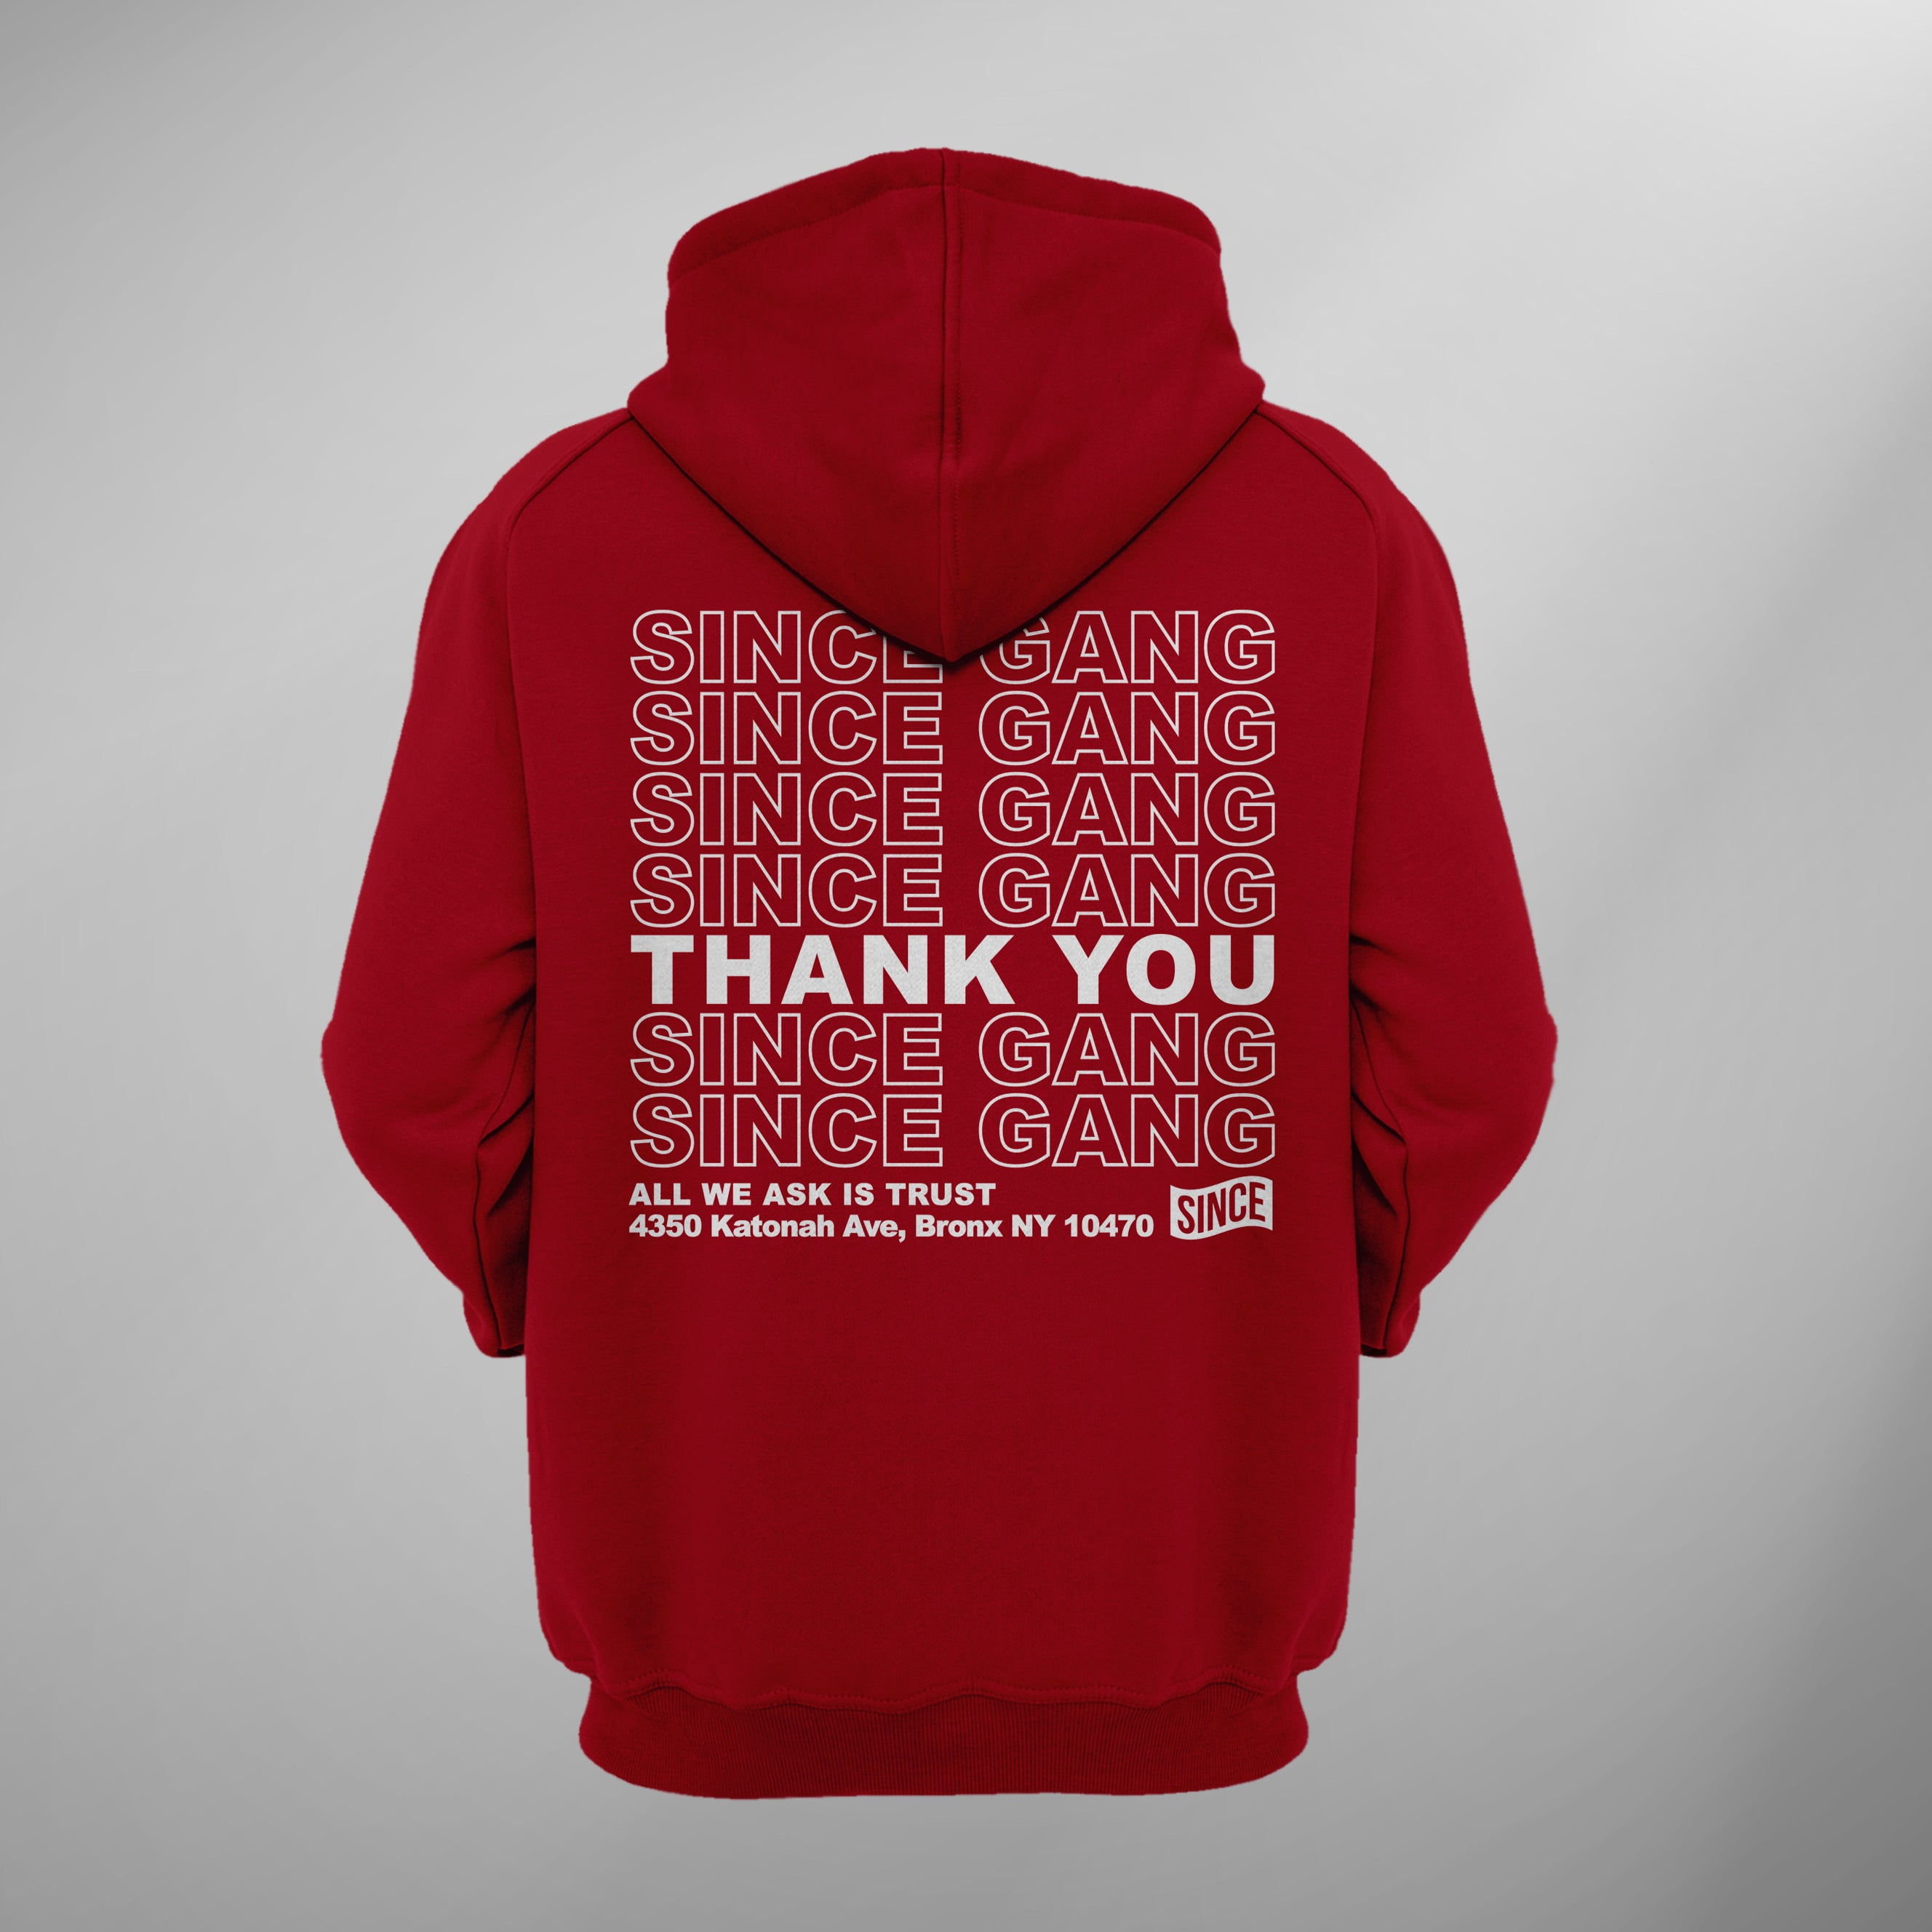 Thank you 2.0 Anniversary Pullover Hoody